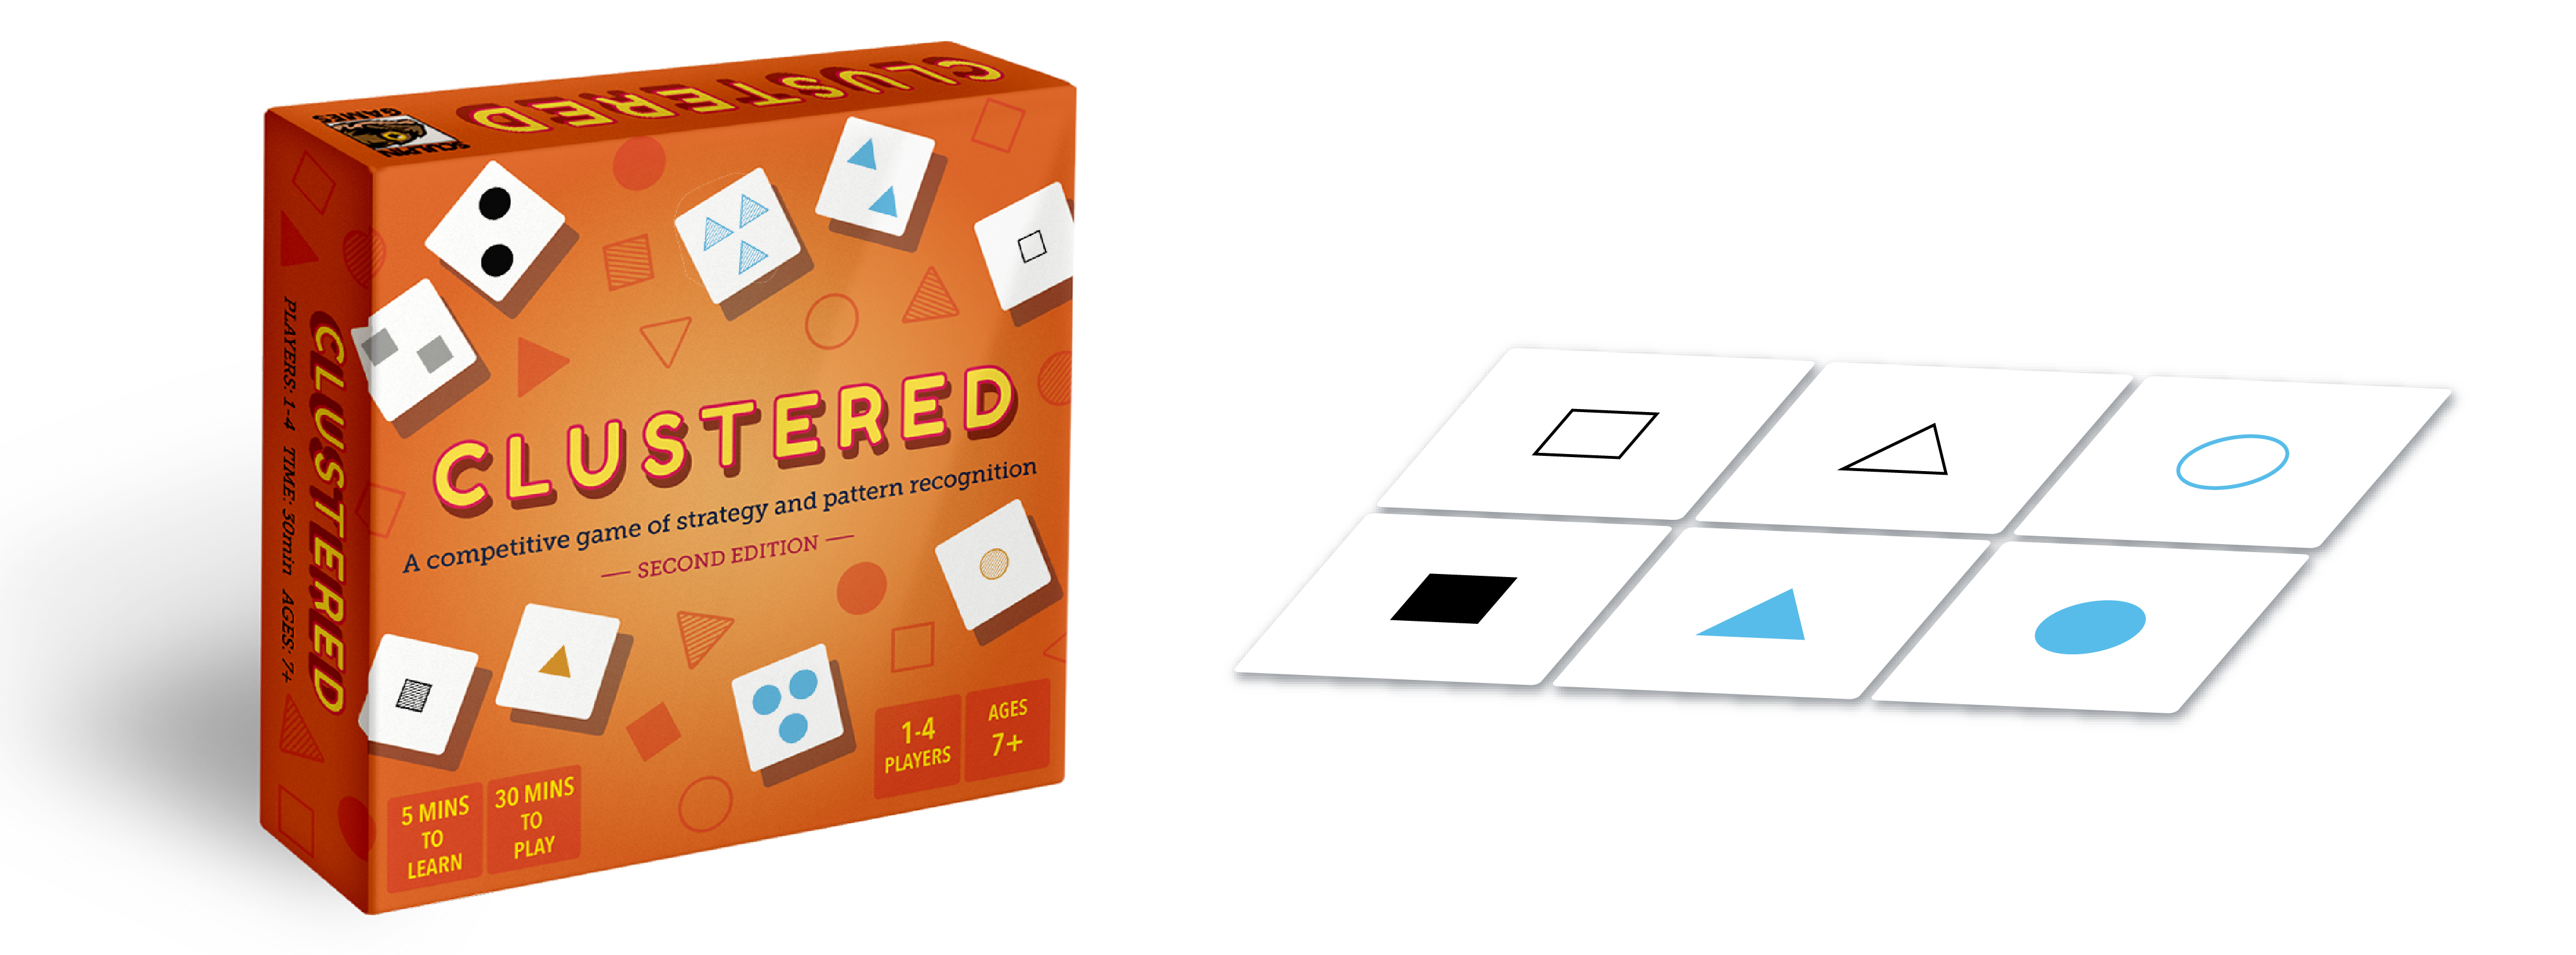 Clustered is an easy-to-learn strategy card game that is fun for the whole family!